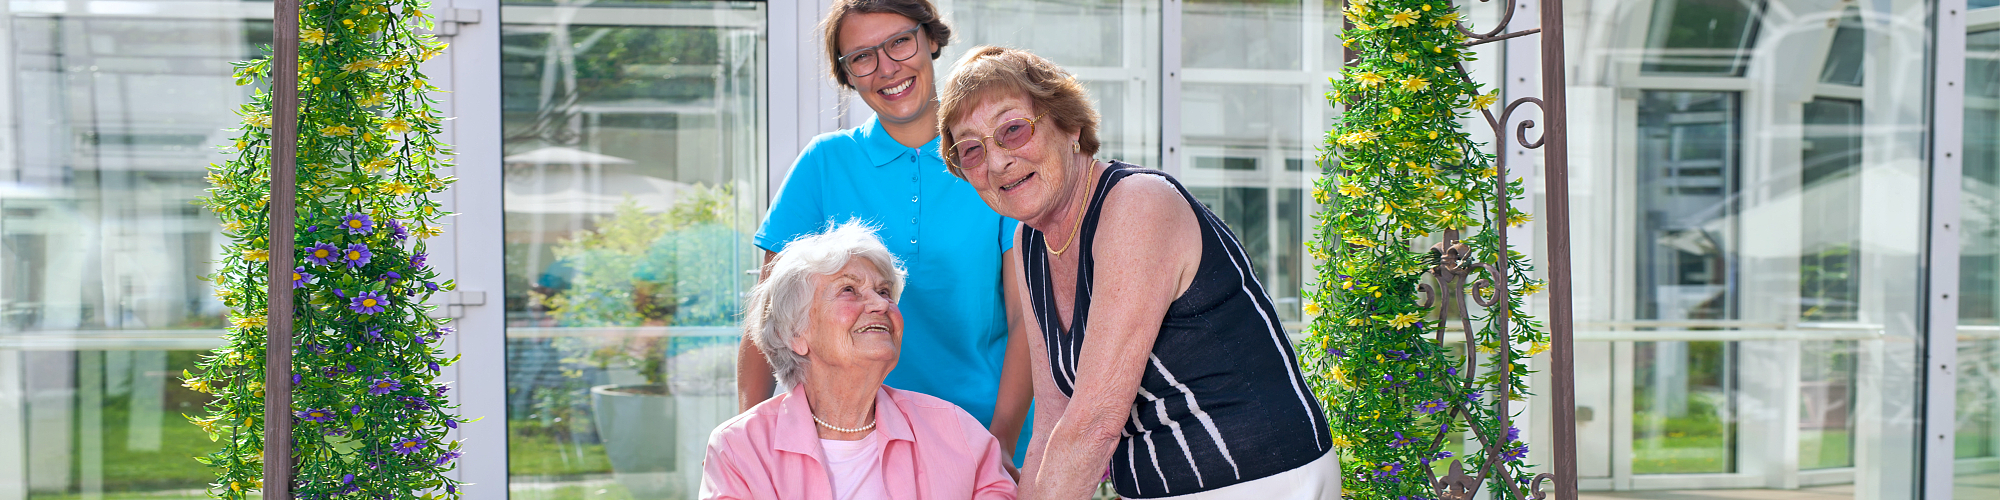 senior women and caregiver smiling